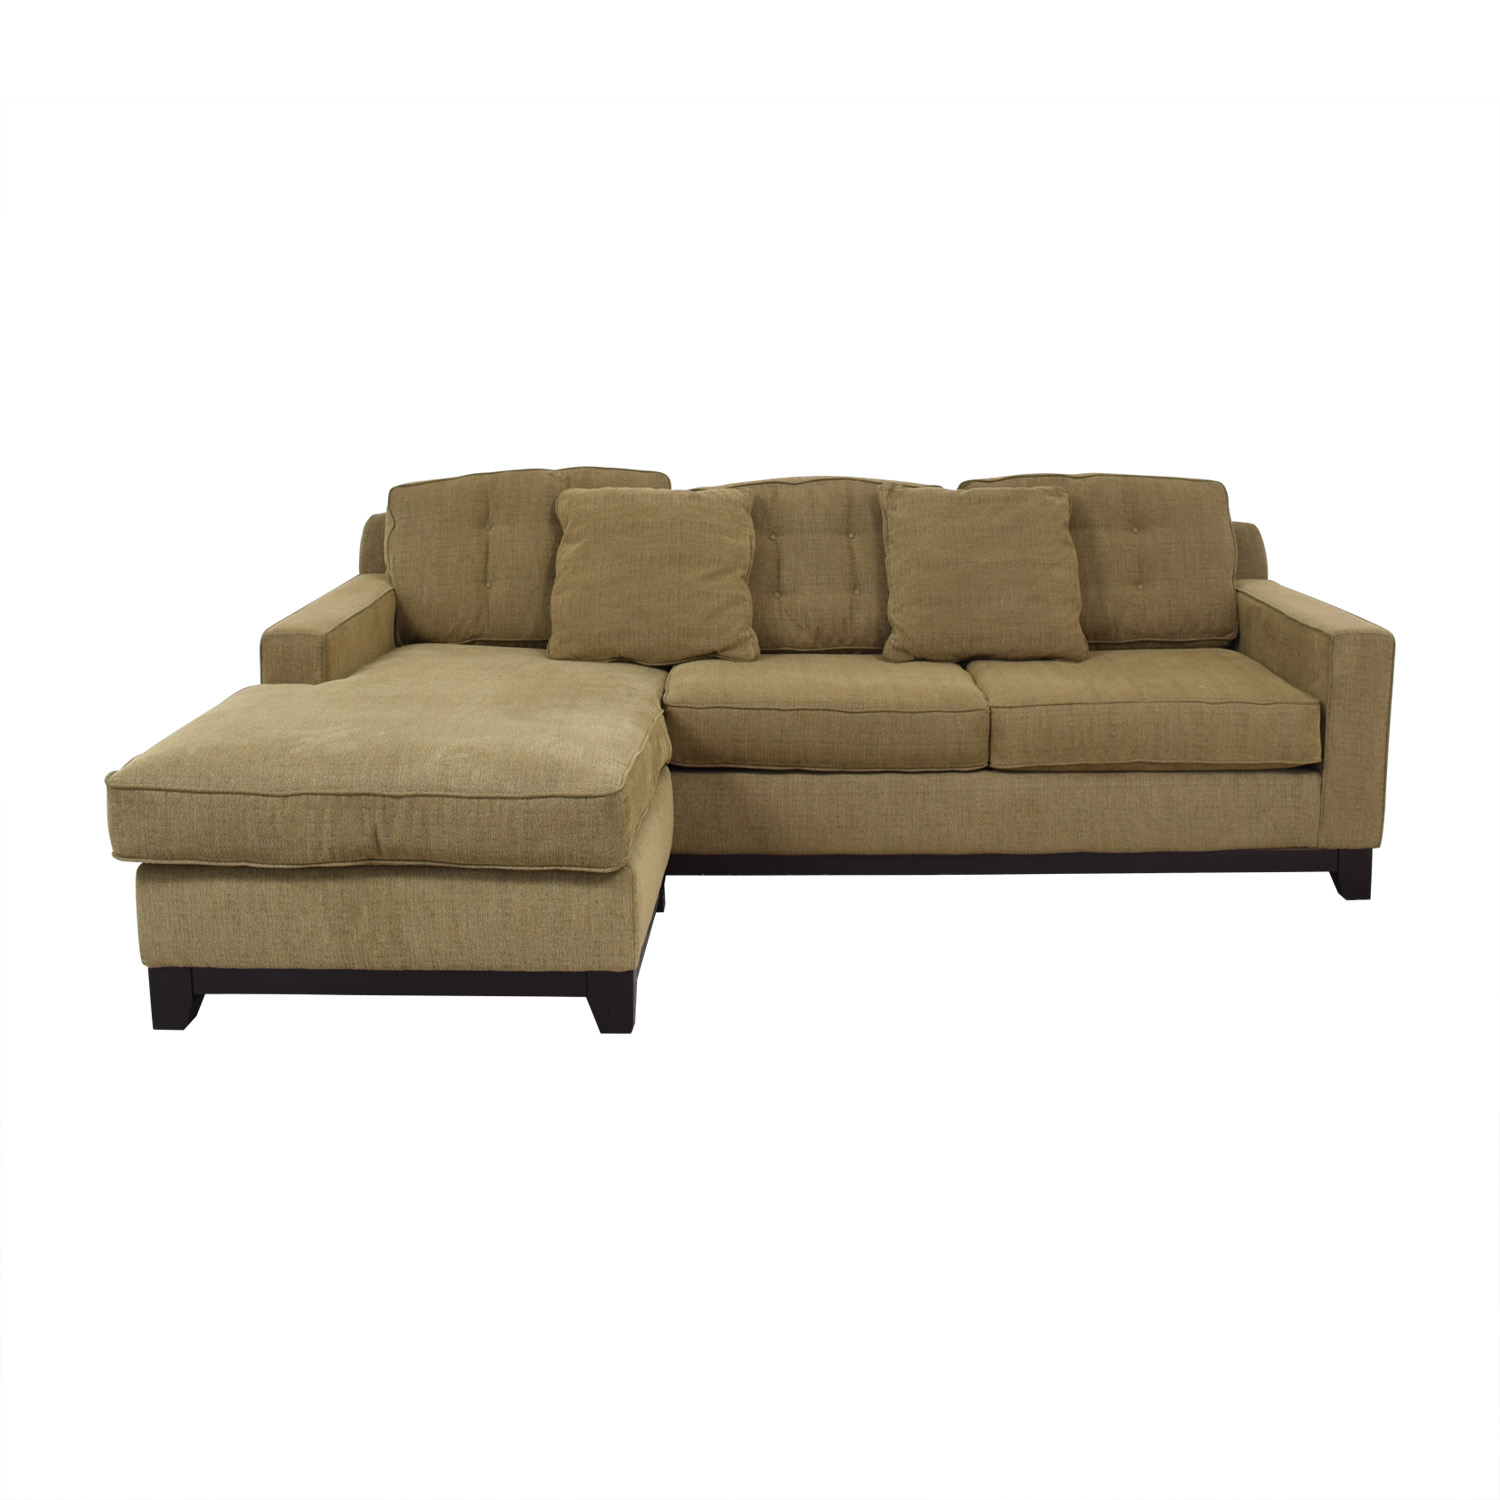 Jonathan Lewis Furniture >> 56 Off Jonathan Louis Jonathan Lewis Brown Sectional Sofa Sofas